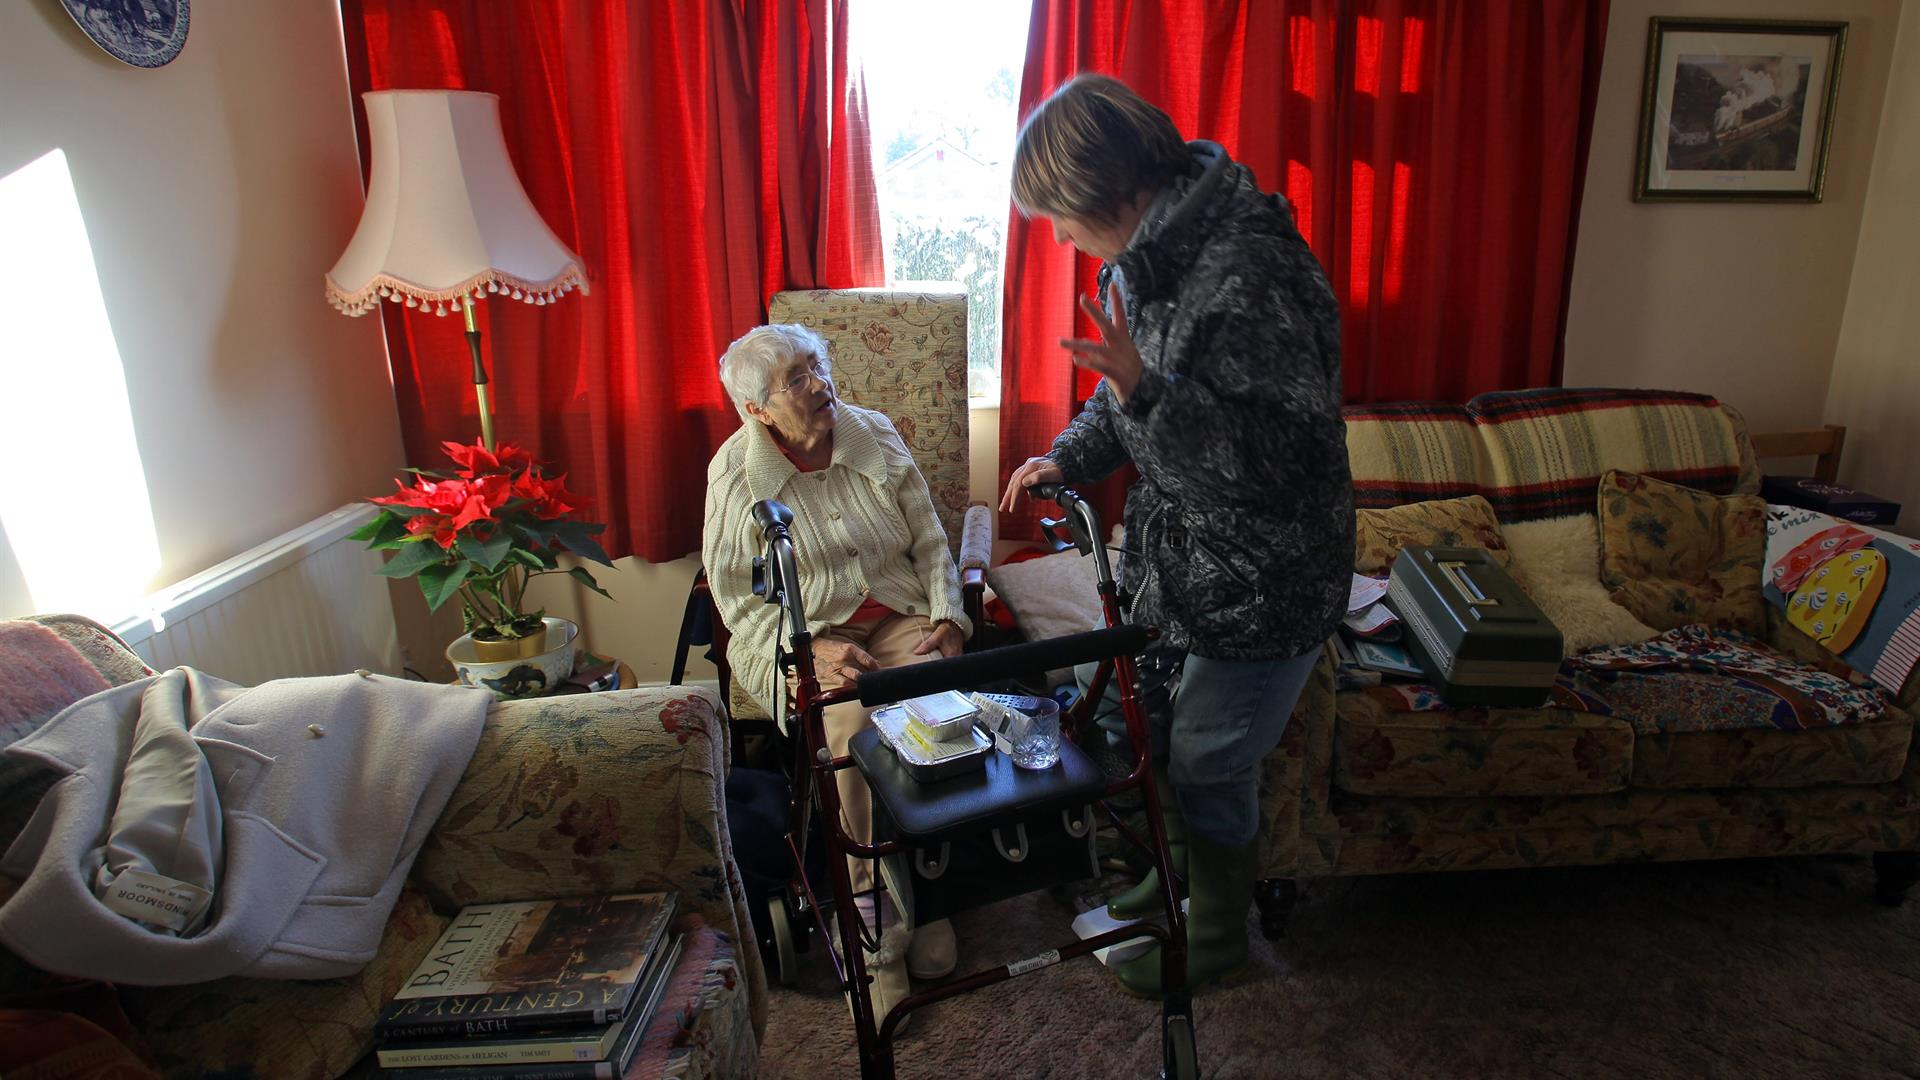 Matt Cardy:Getty Images Caregiver Familiare